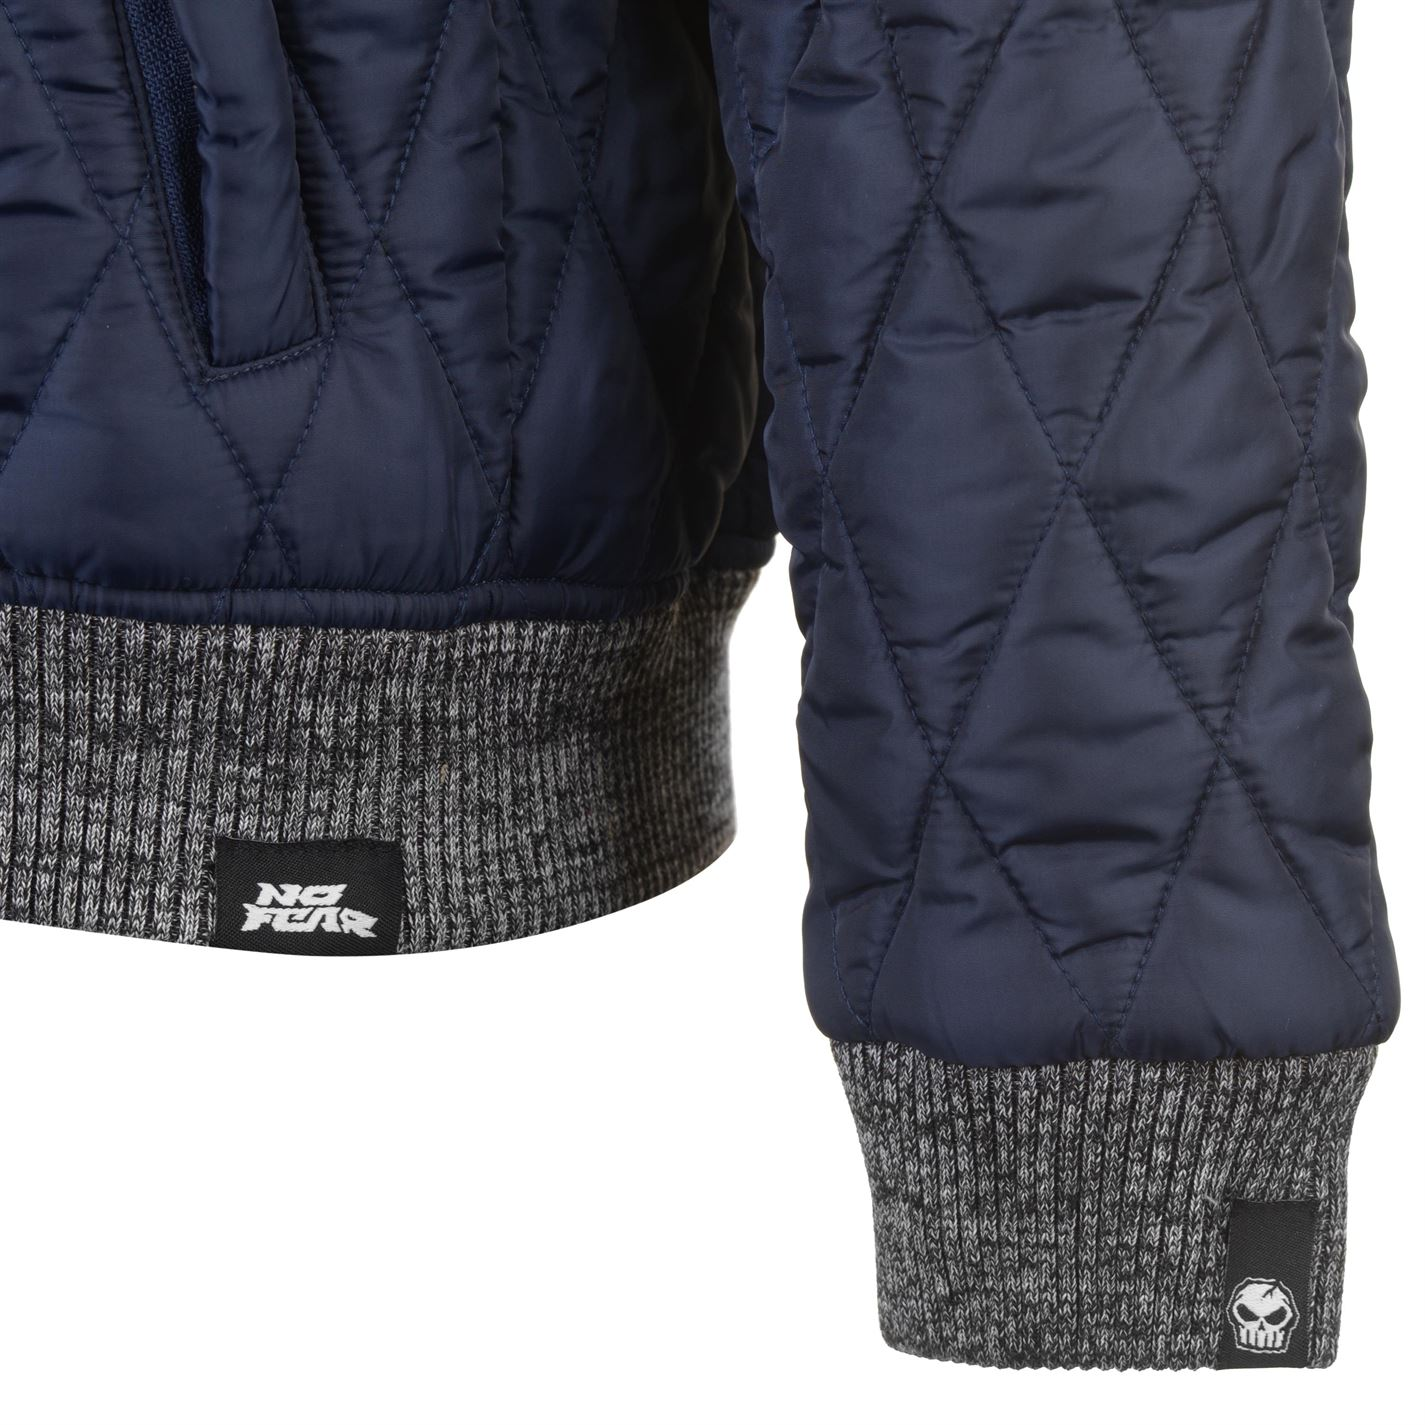 No-Fear-Quilted-Bomber-Jacket-Mens-Gents-Coat-Top-Full-Length-Sleeve-Zip-Zipped thumbnail 20